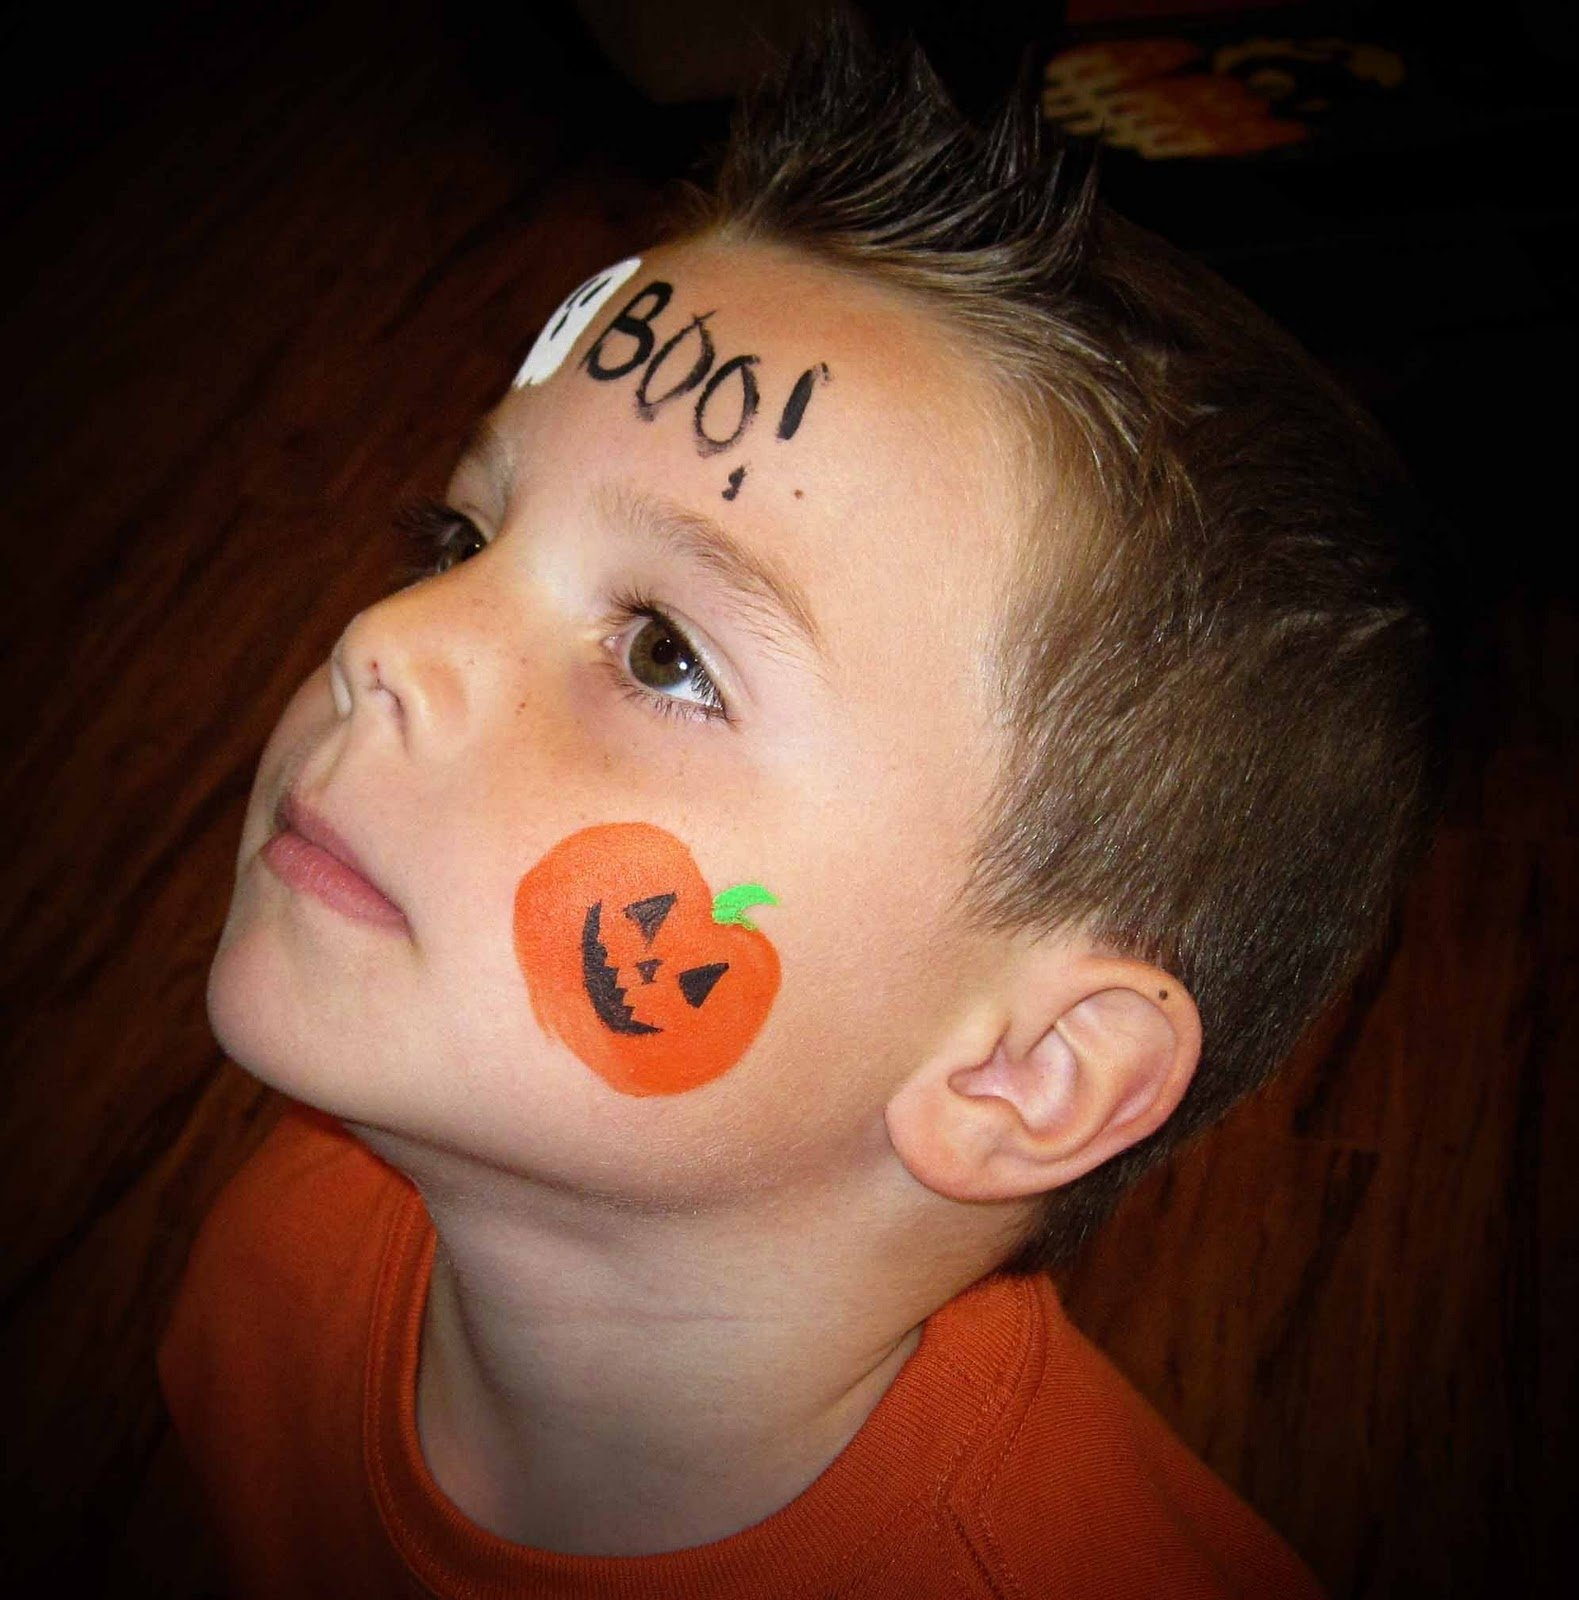 10 Amazing Simple Halloween Face Painting Ideas For Kids childrens learning activities halloween fun face painting 2020